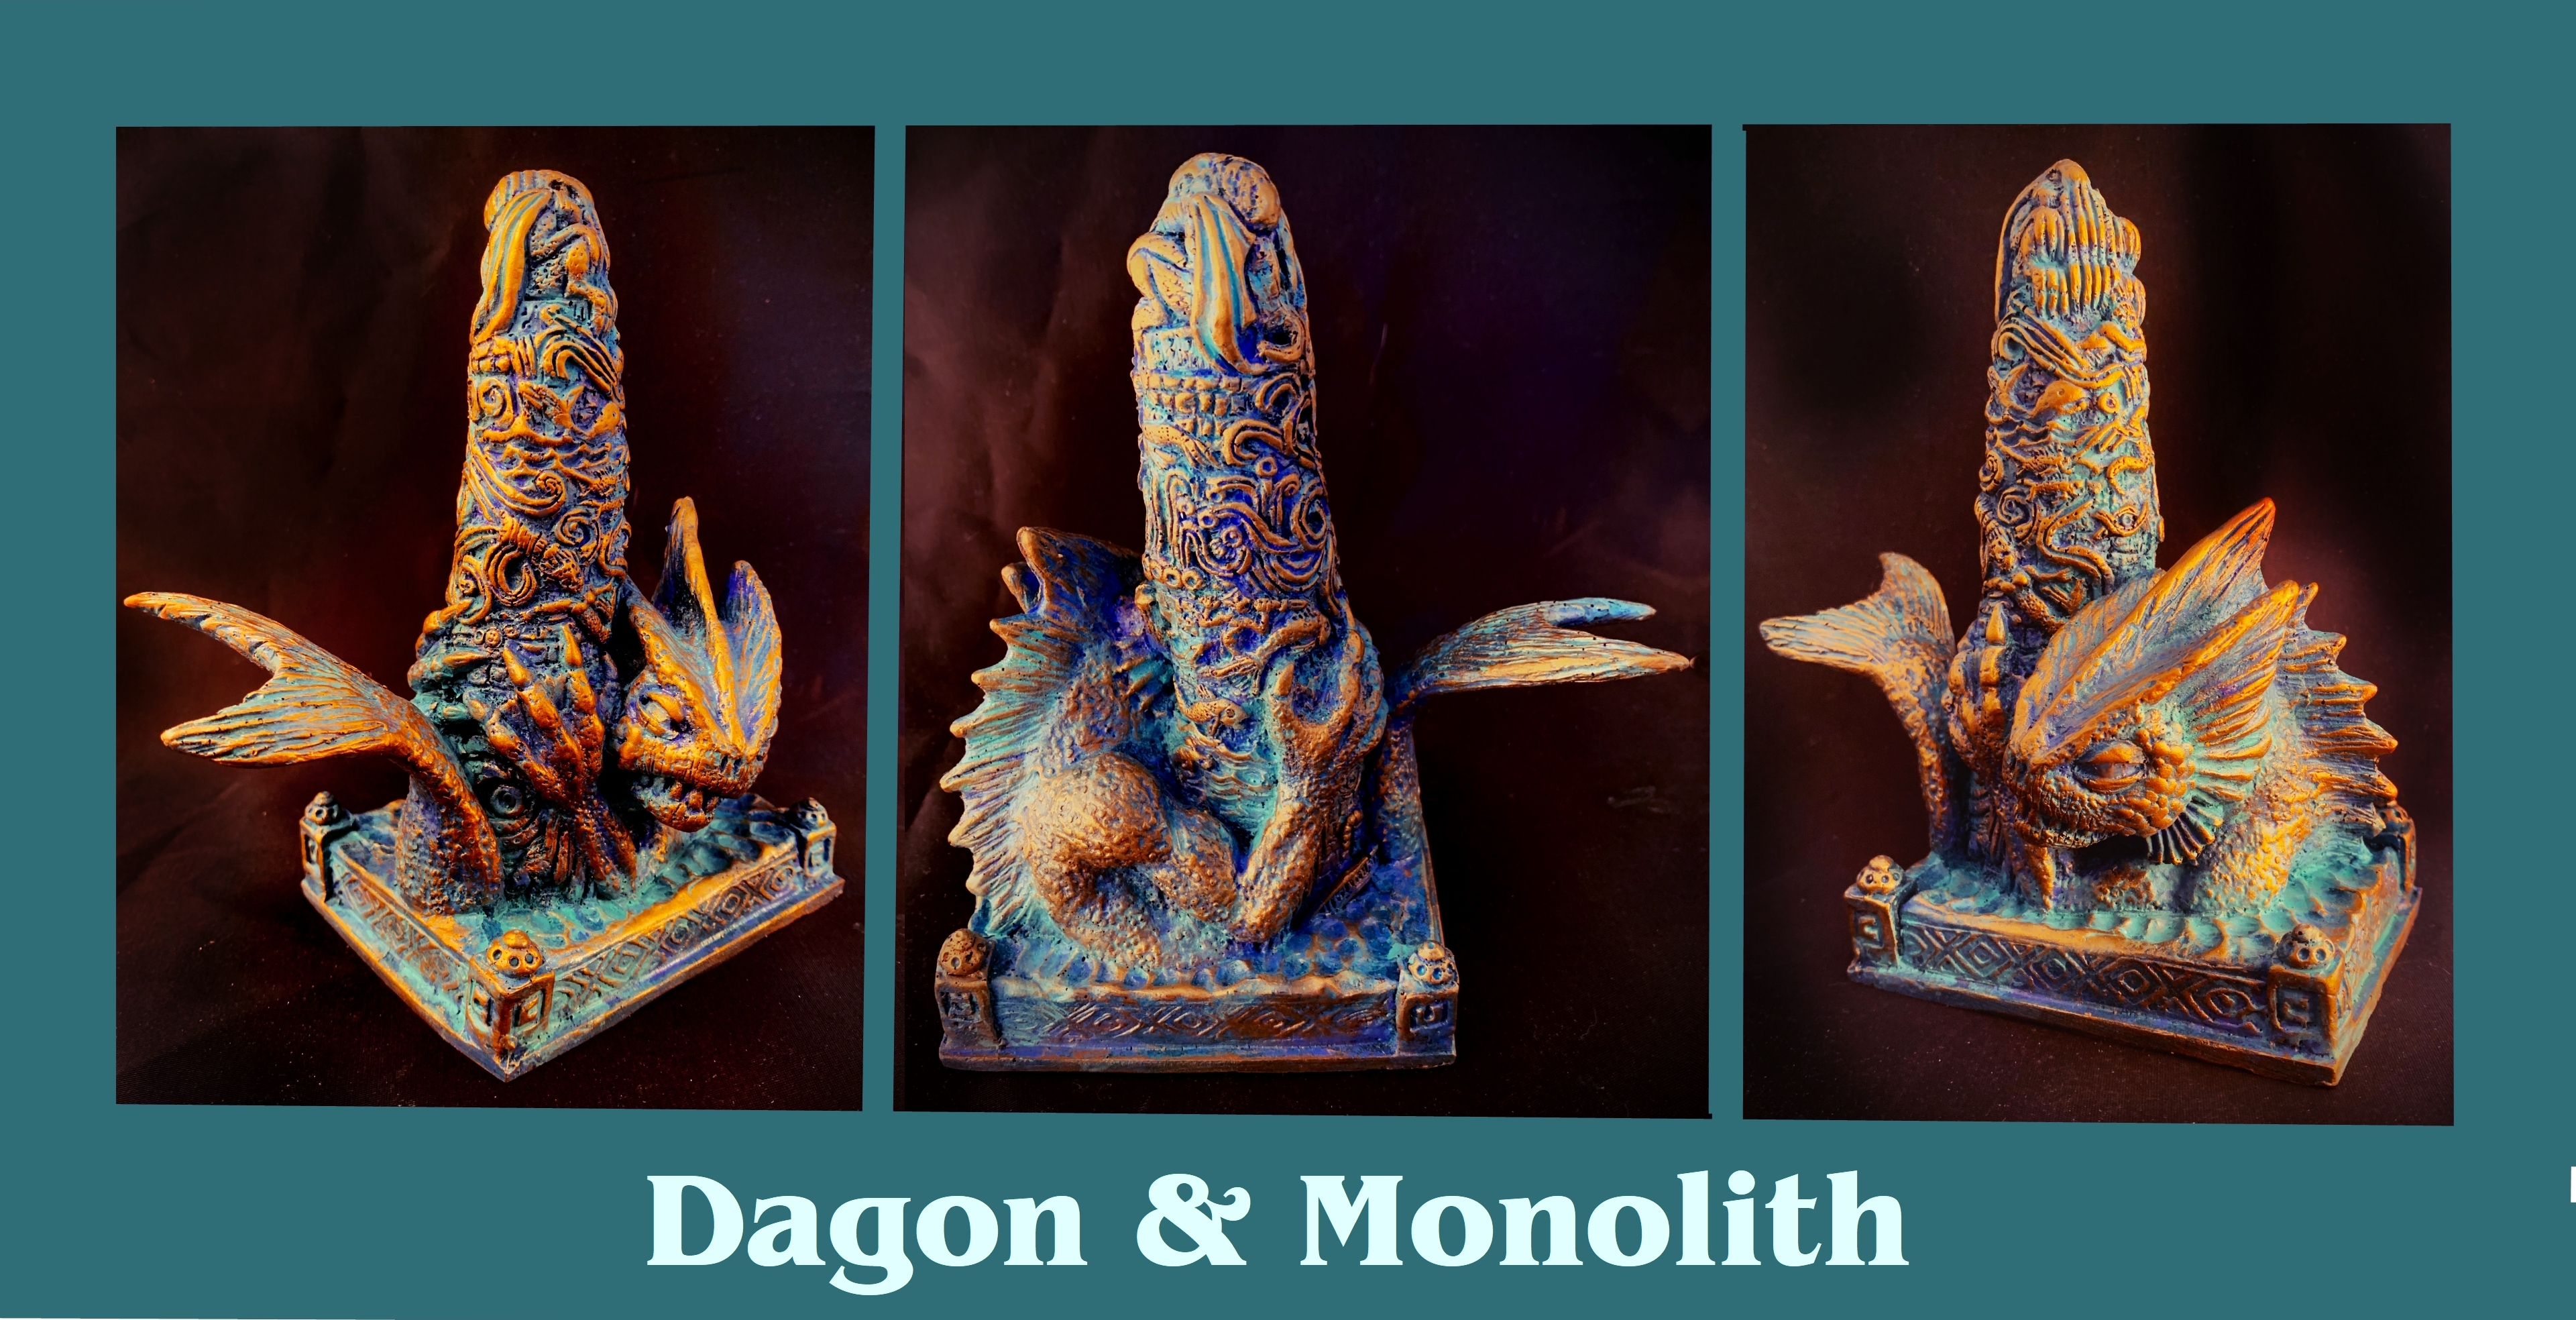 Dagon at the Monlith